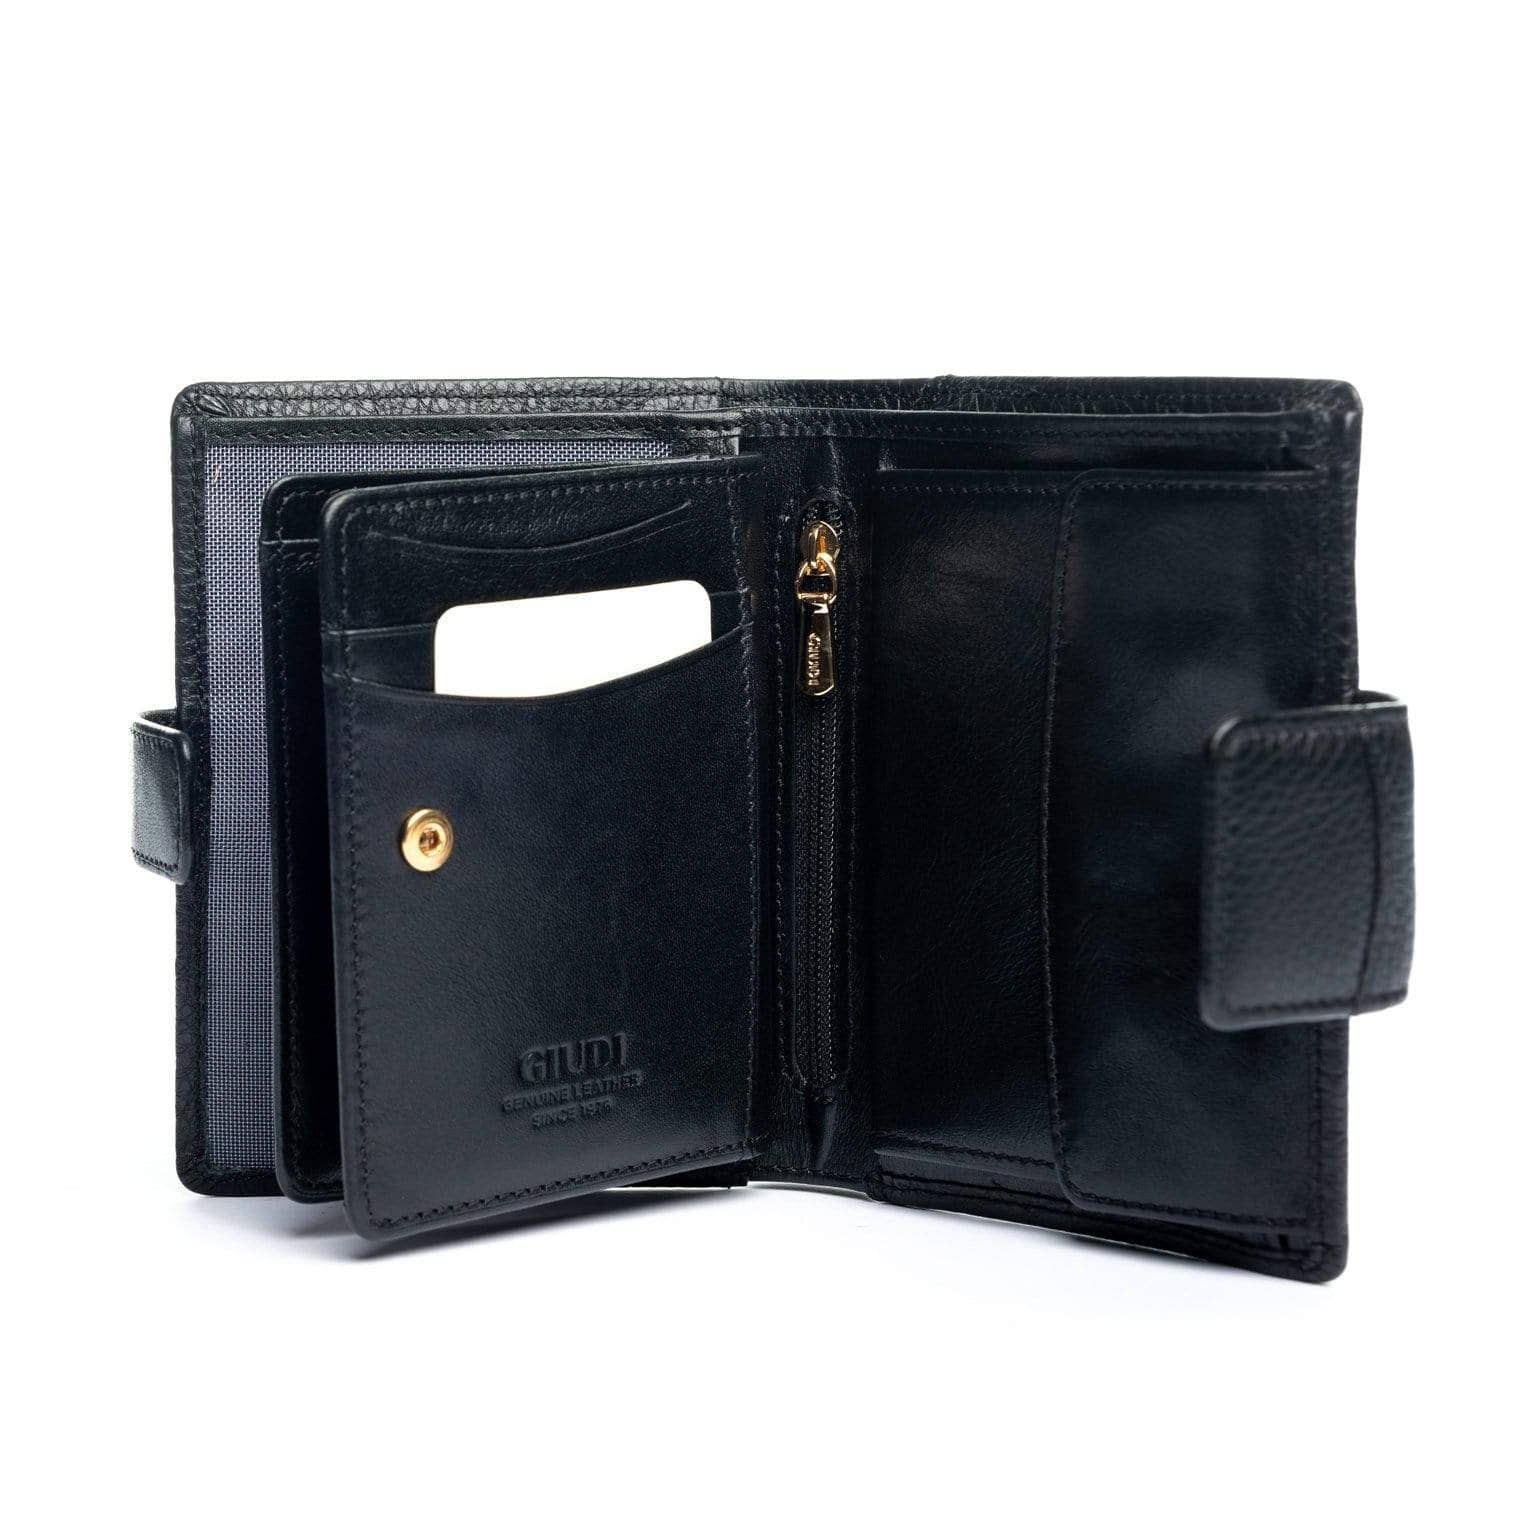 Womens Black Leather Wallet - Genuine Made in Italy